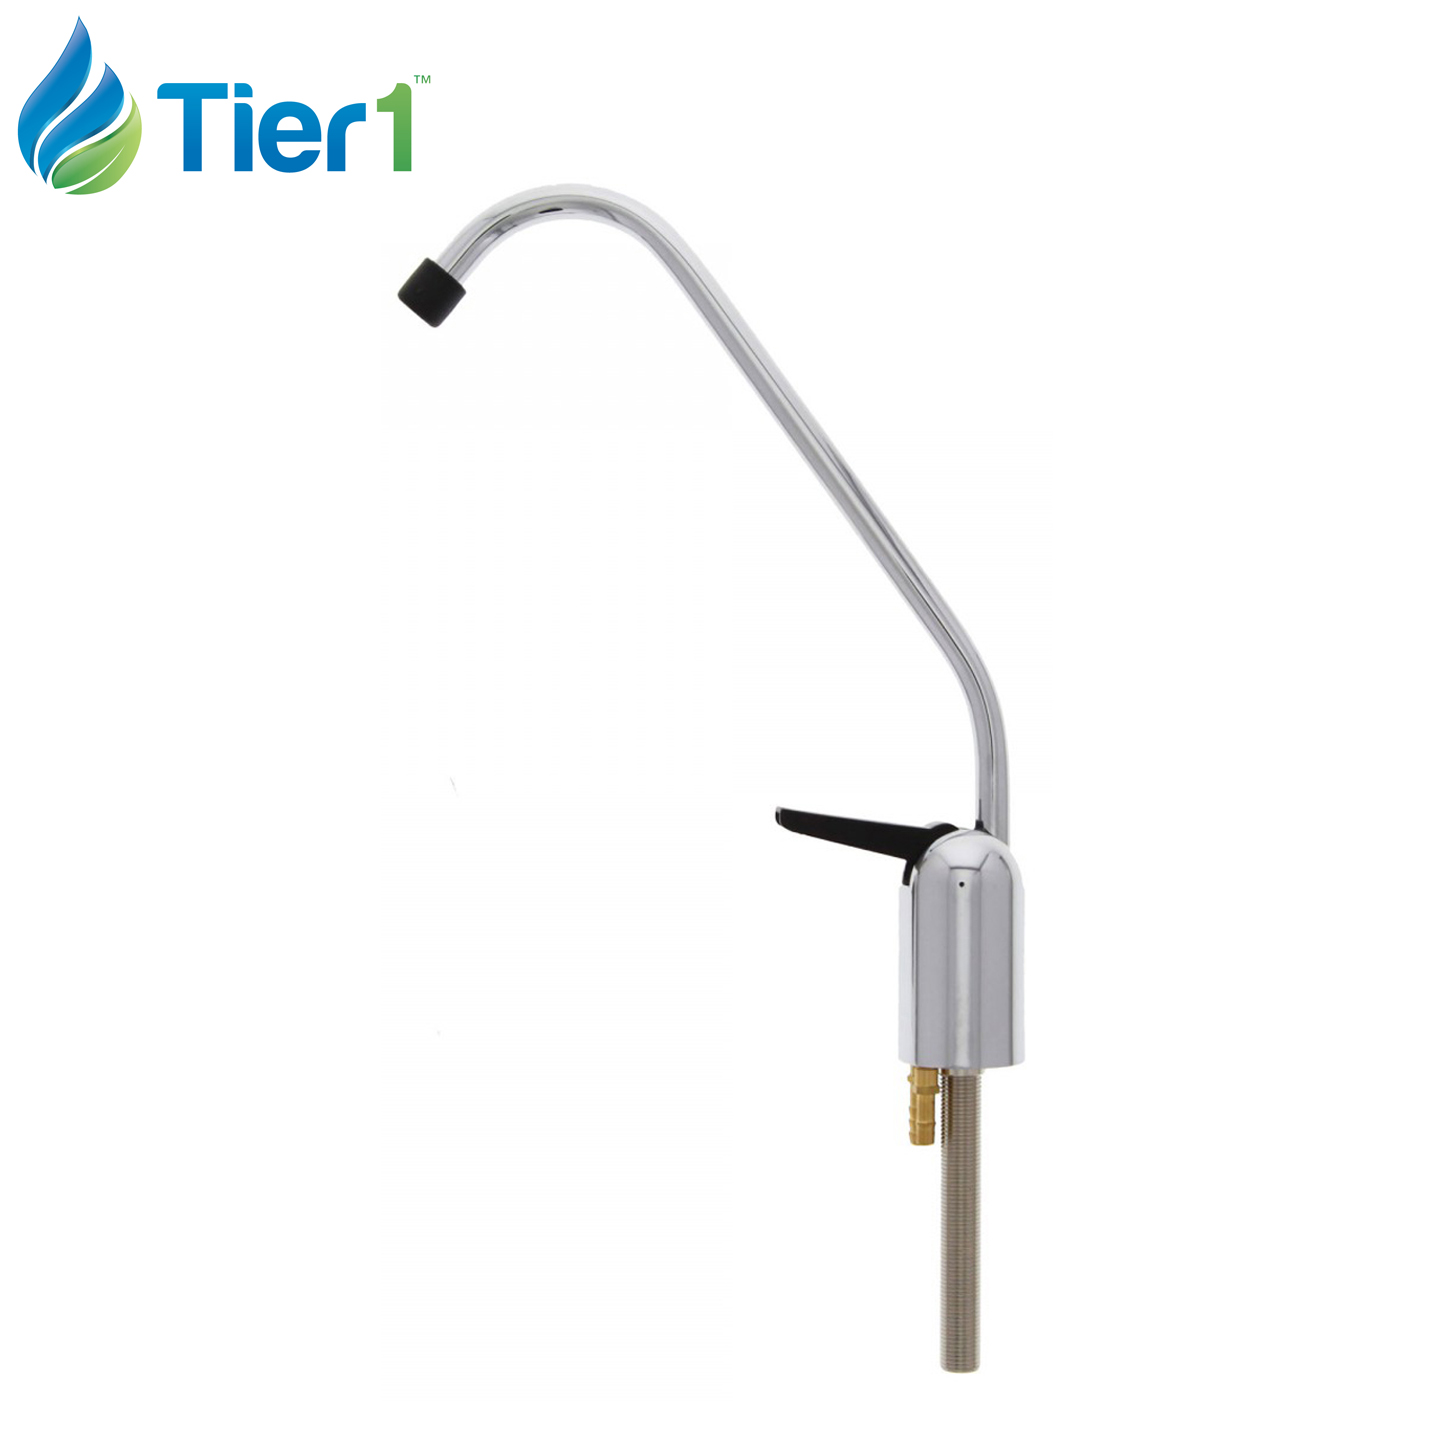 Tier1 Air Amp Water Filters